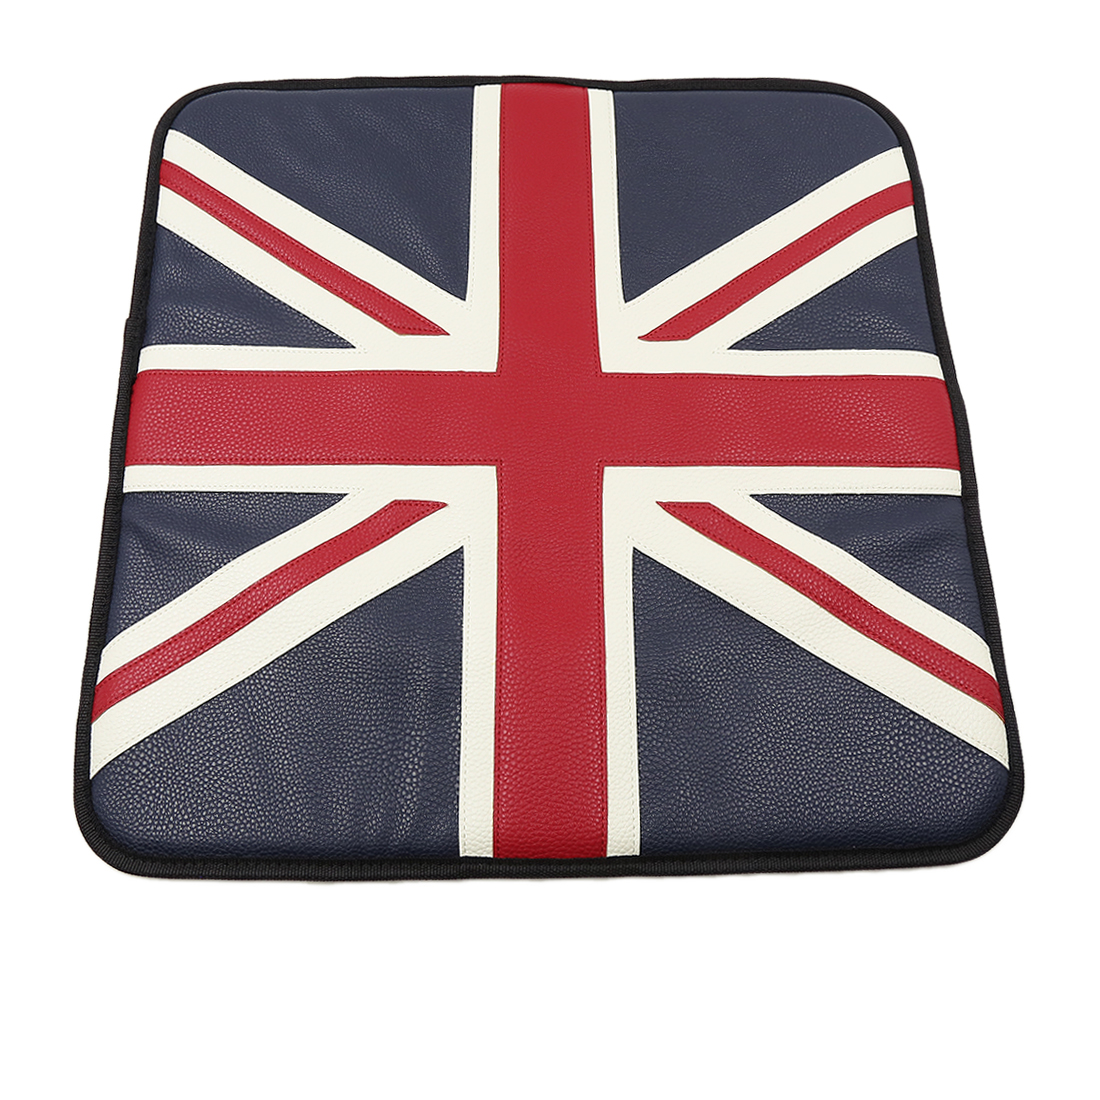 44cm x 43cm Union Jack Pattern Seat Cushion Cover Pad Mat for Car Office Chair